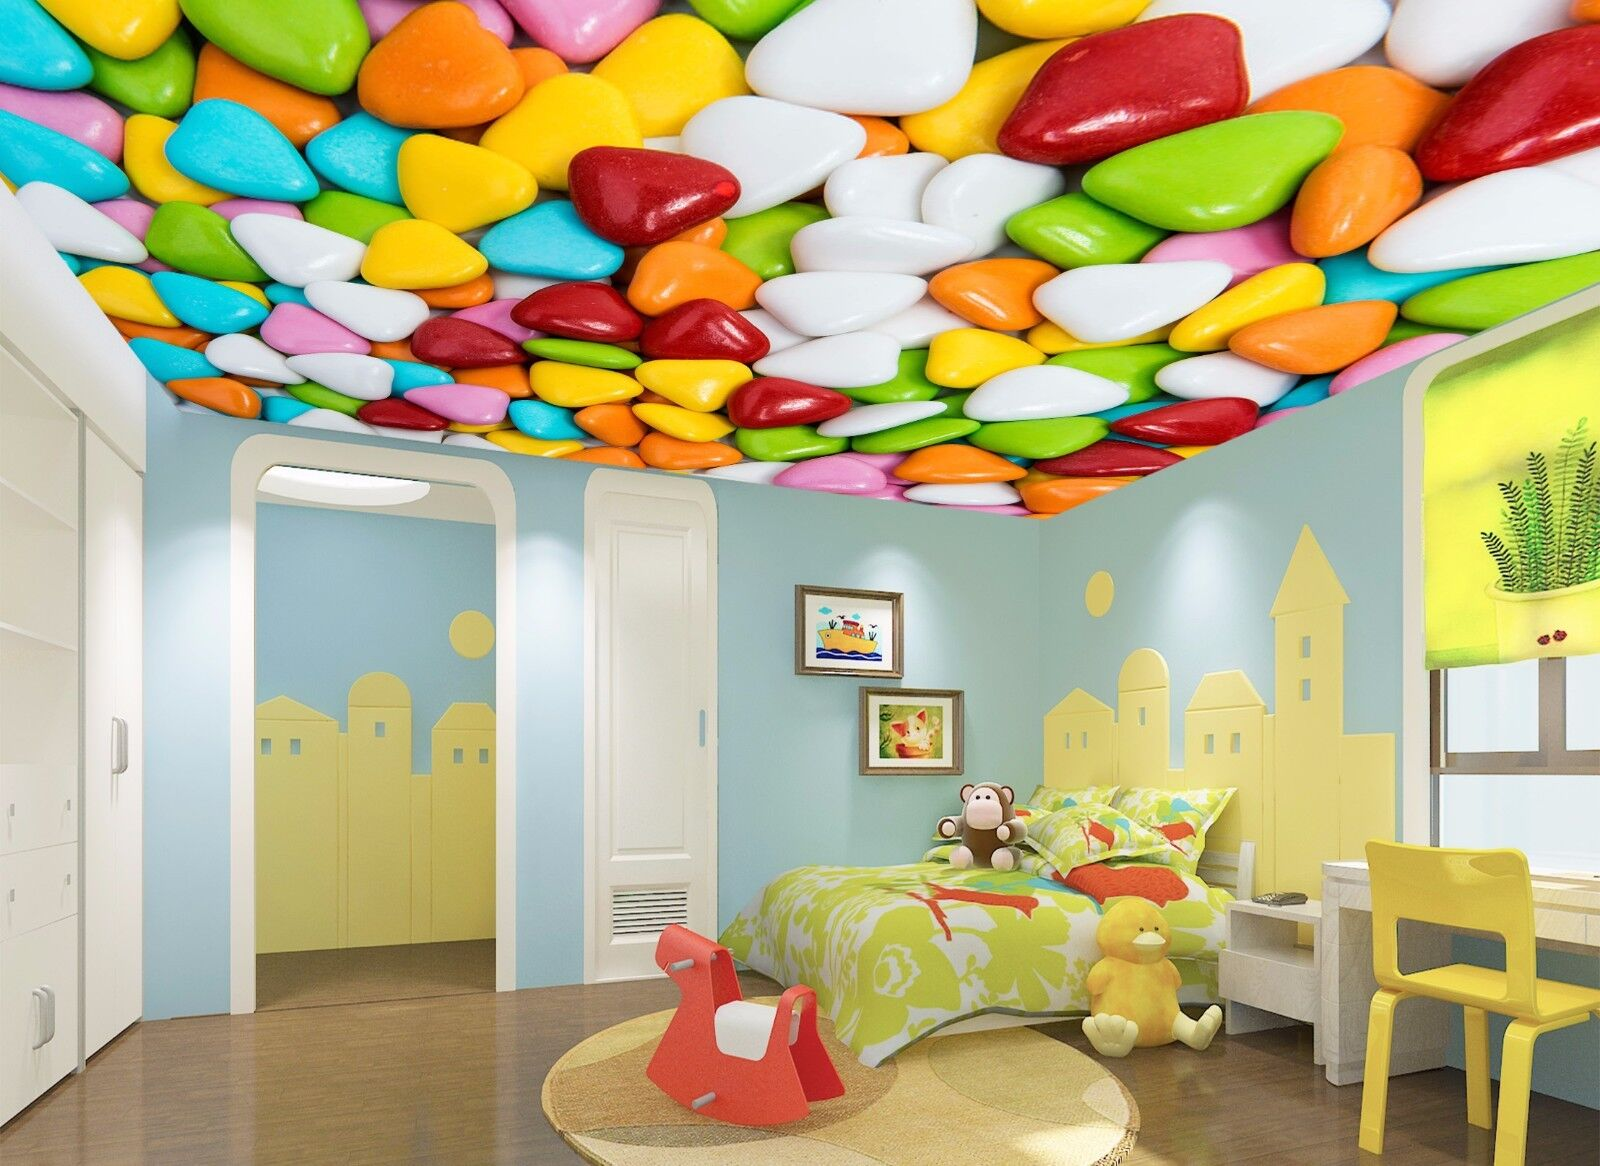 3D Sweet Candy 54 Ceiling WallPaper Murals Wall Print Decal Deco AJ WALLPAPER UK